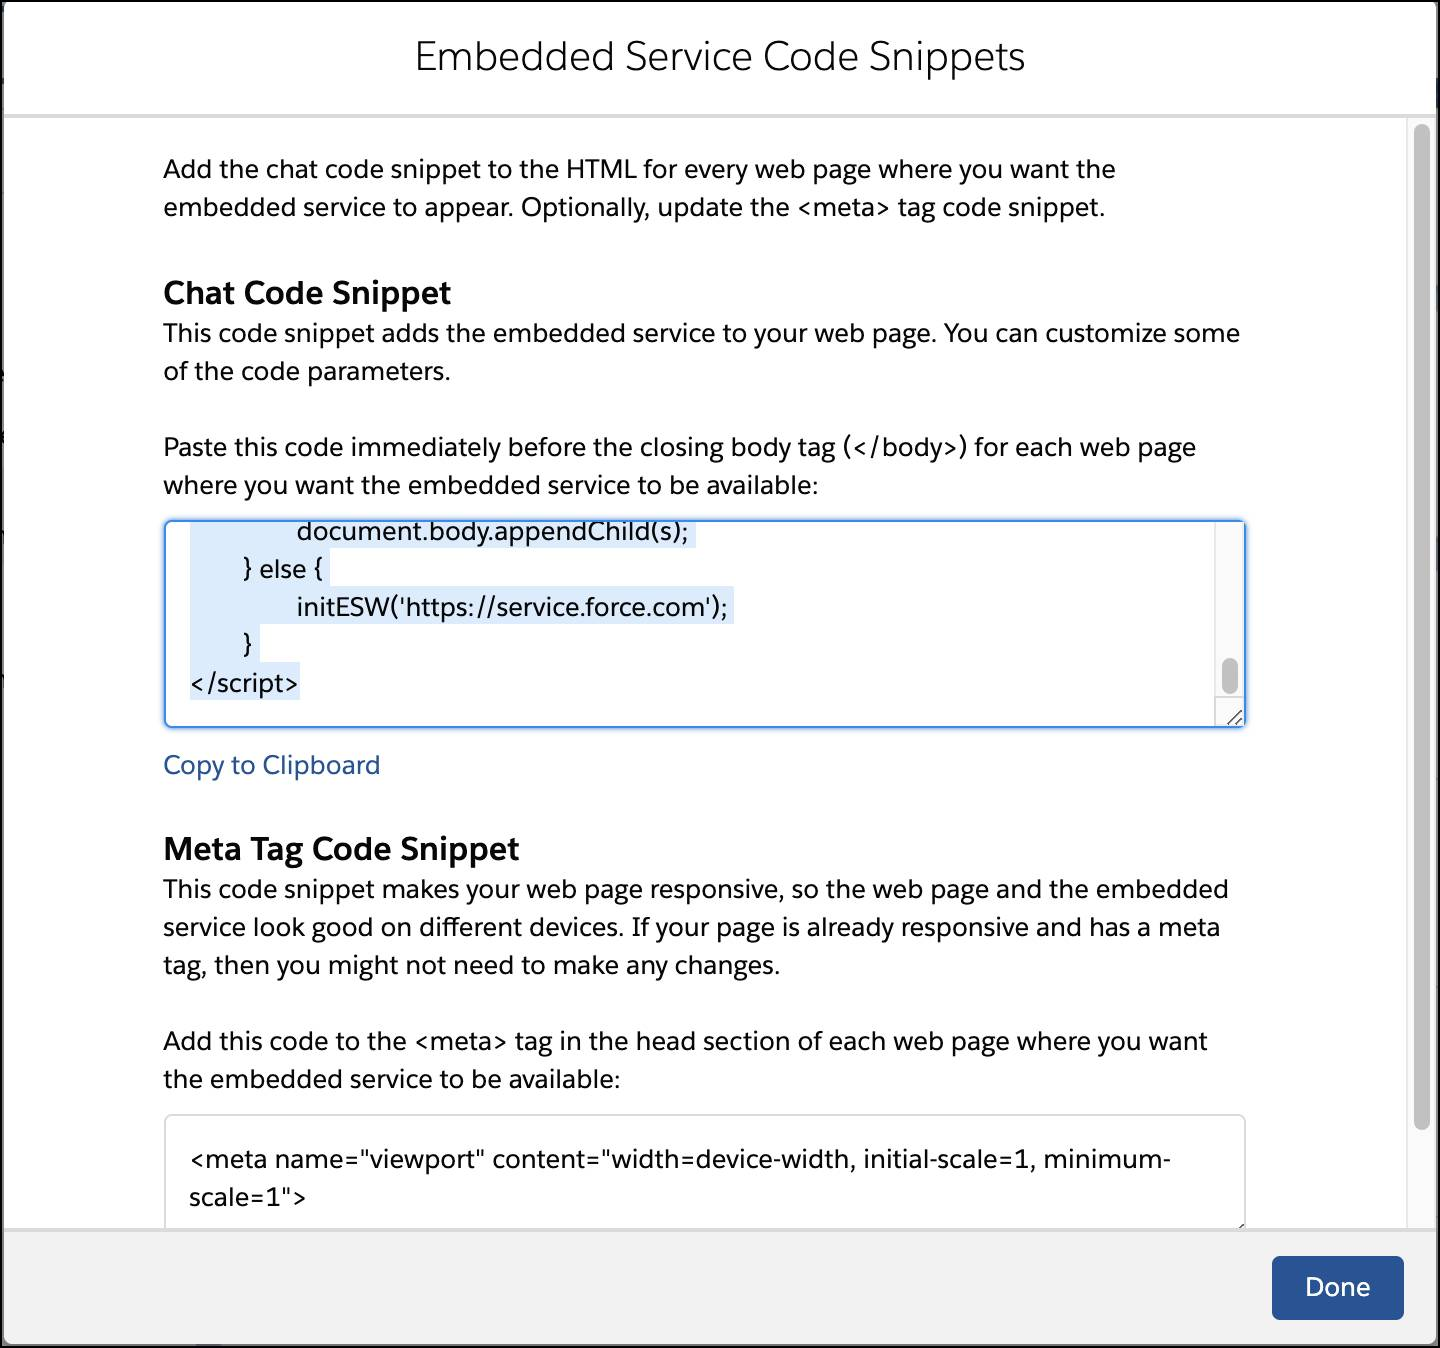 Embedded Service Code Snippets window showing codes to be copied.